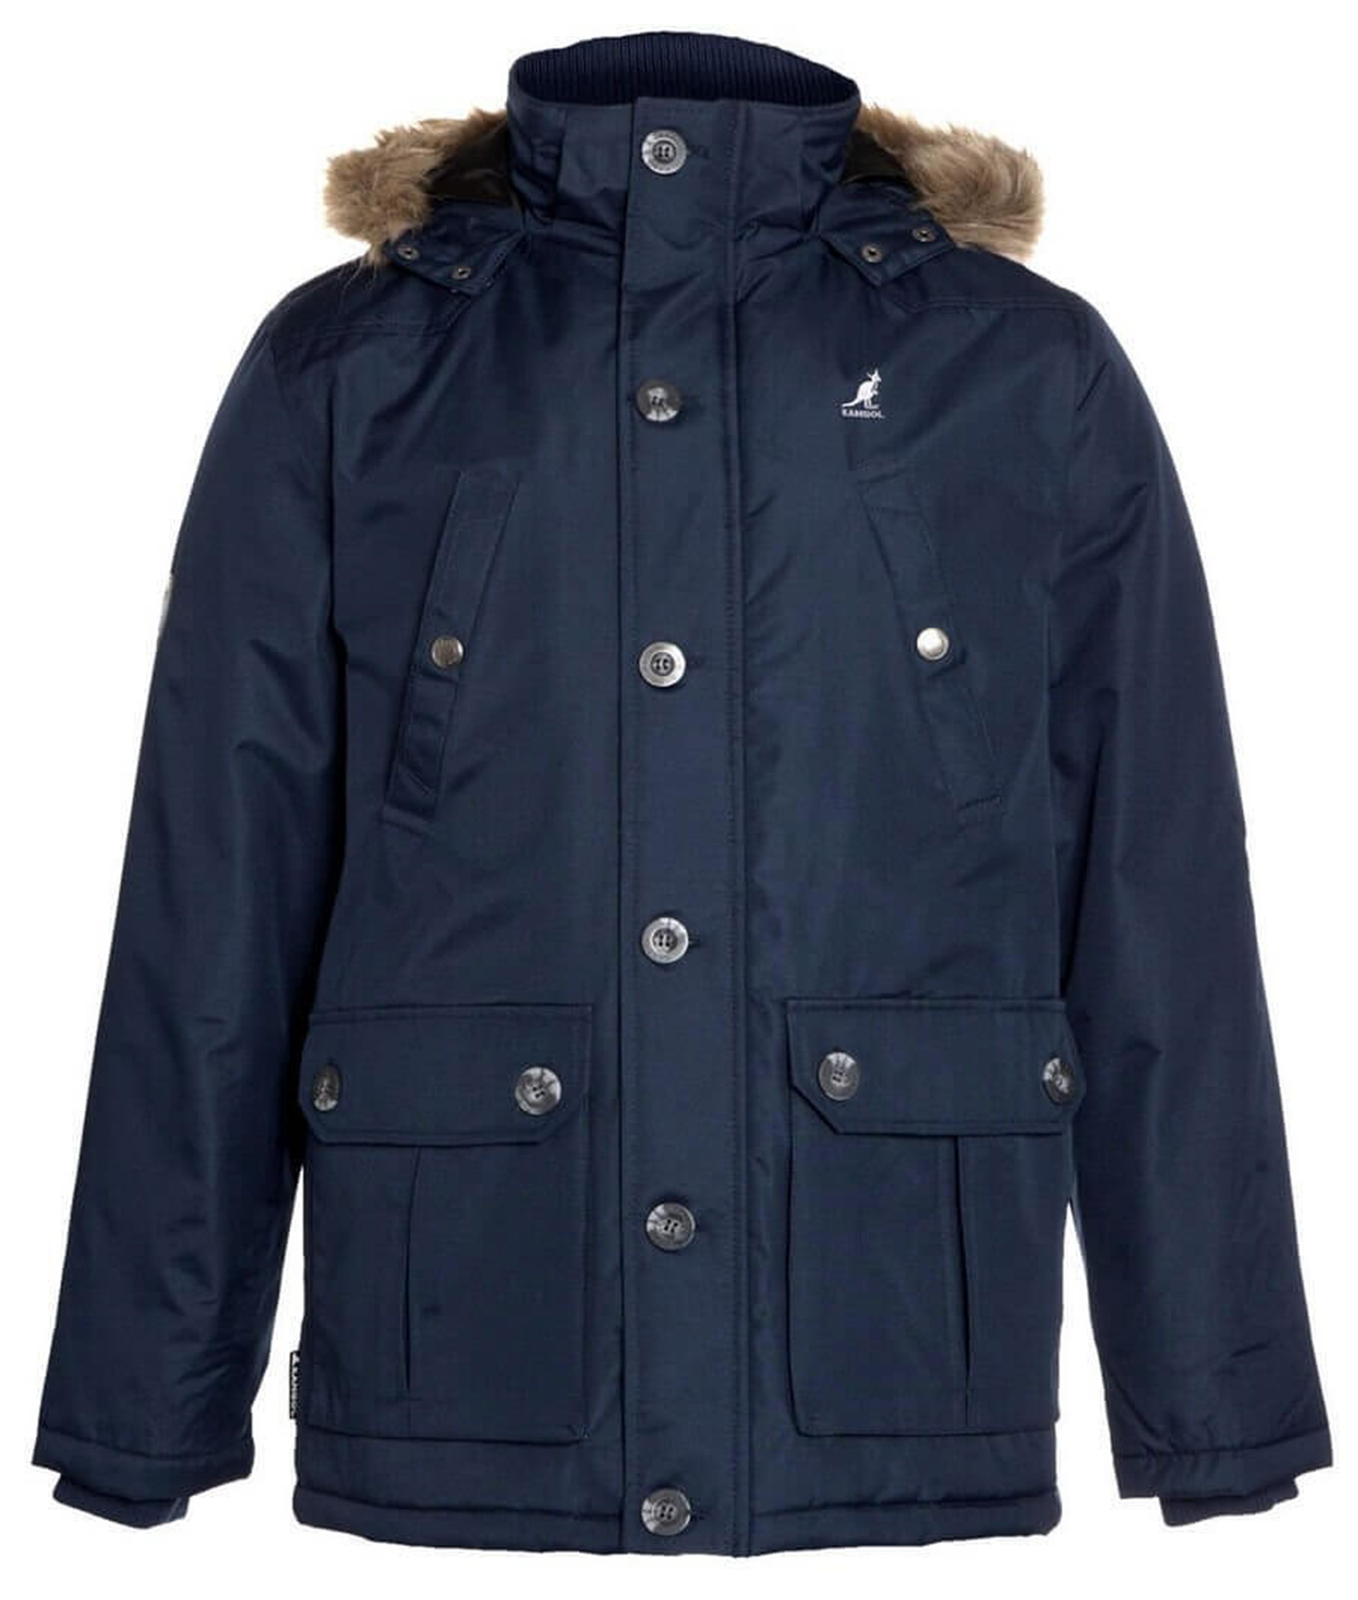 Reviews on Winter Jacket in Toronto, ON - MEC Toronto, Authentic Couture, Sporting Life, The North Face, Best winter jacket in Toronto, ON Showing of 78 $ Inexpensive One of my favorite stores in Toronto. Bought my winter jacket there and love .